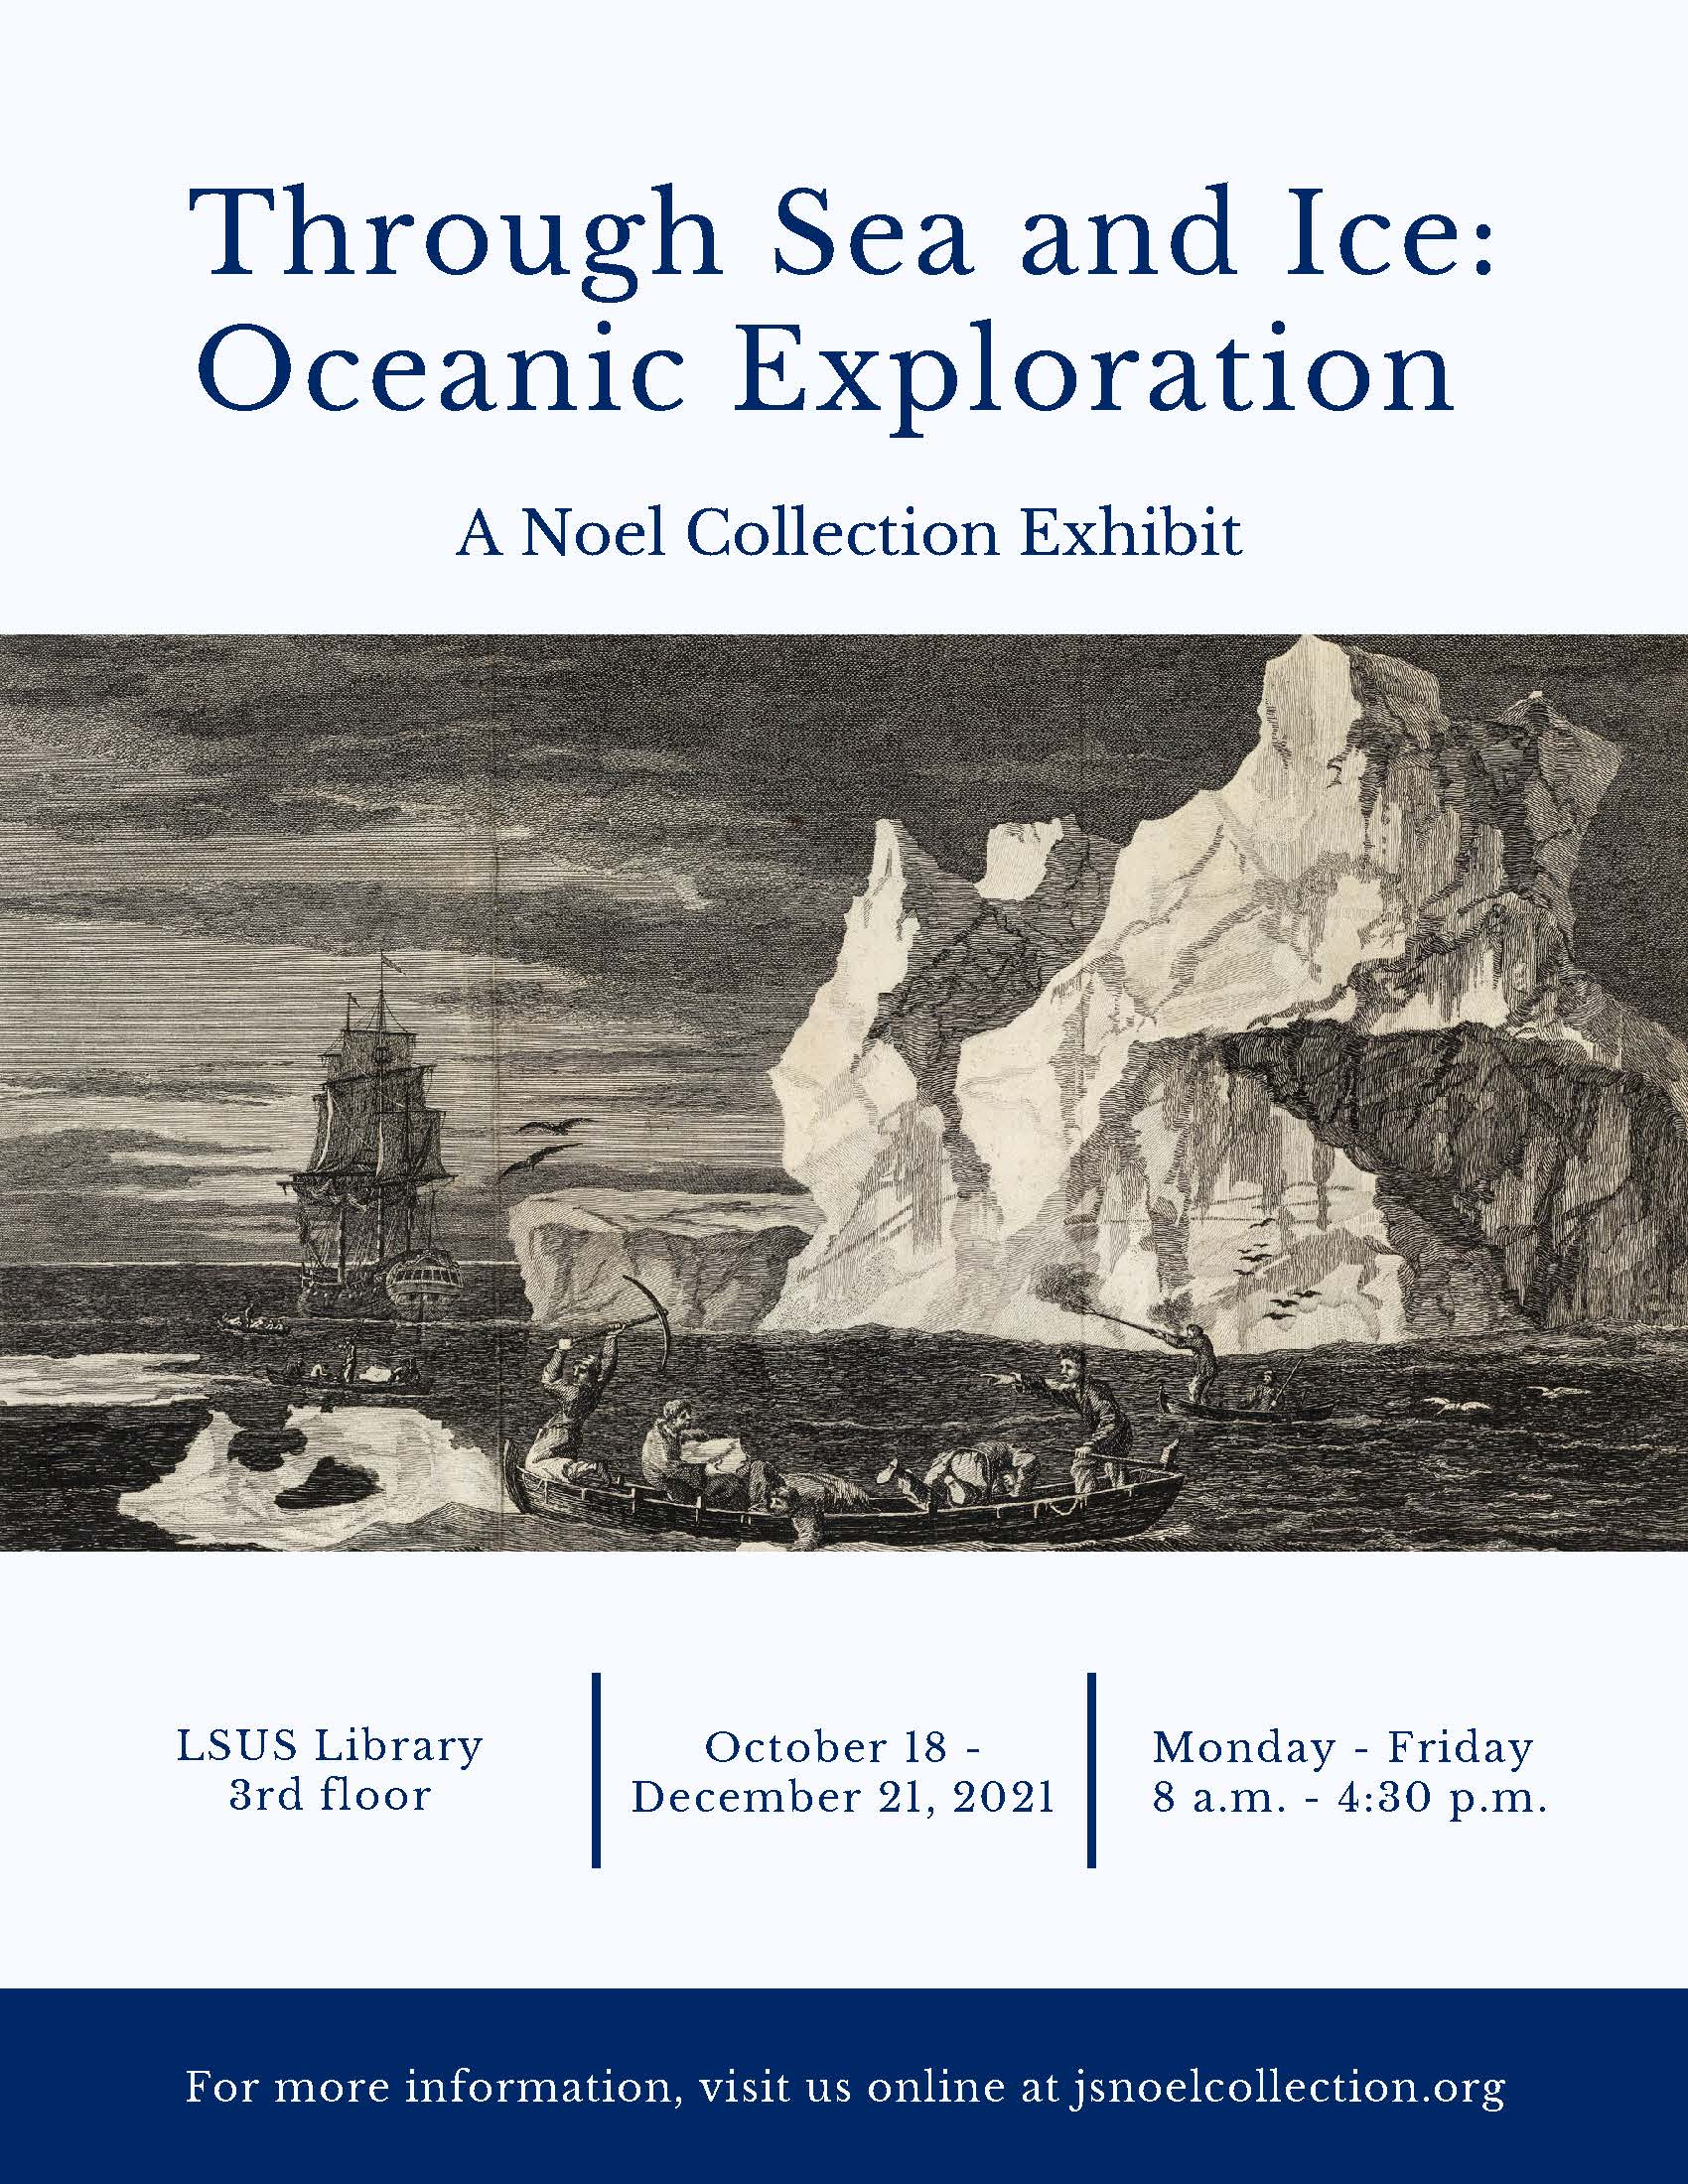 Through Sea and Ice – Oceanic Exploration: A Noel Collection Exhibit